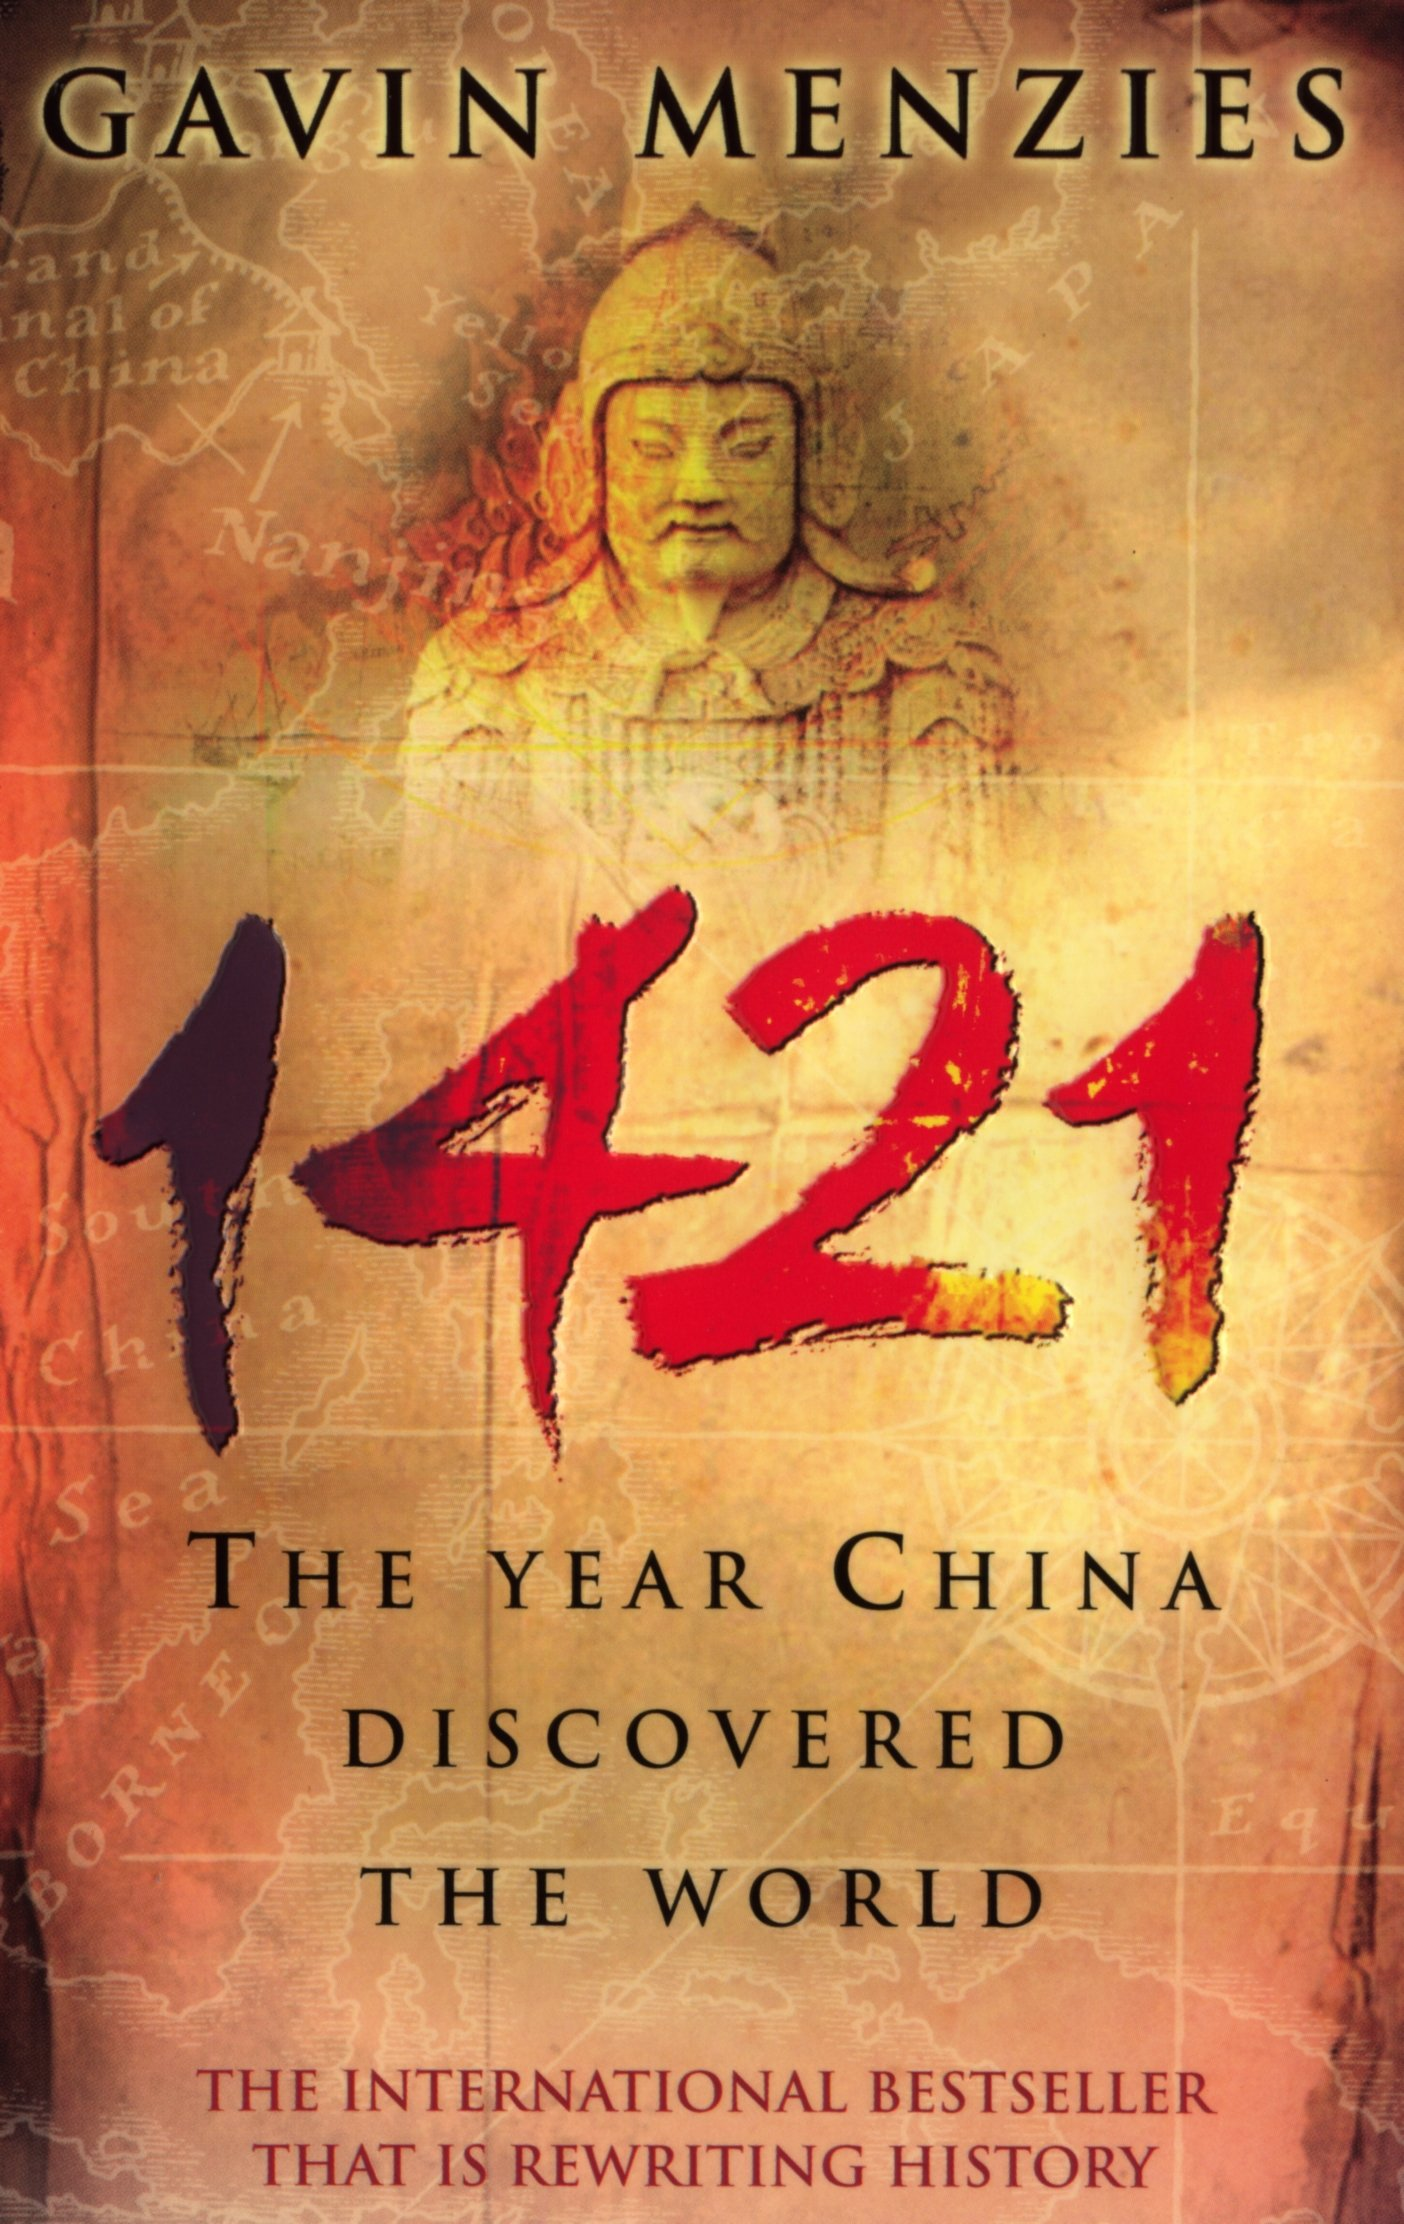 1421 : The Year China Discovered the World: Amazon.co.uk: Gavin Menzies:  9780553815221: Books